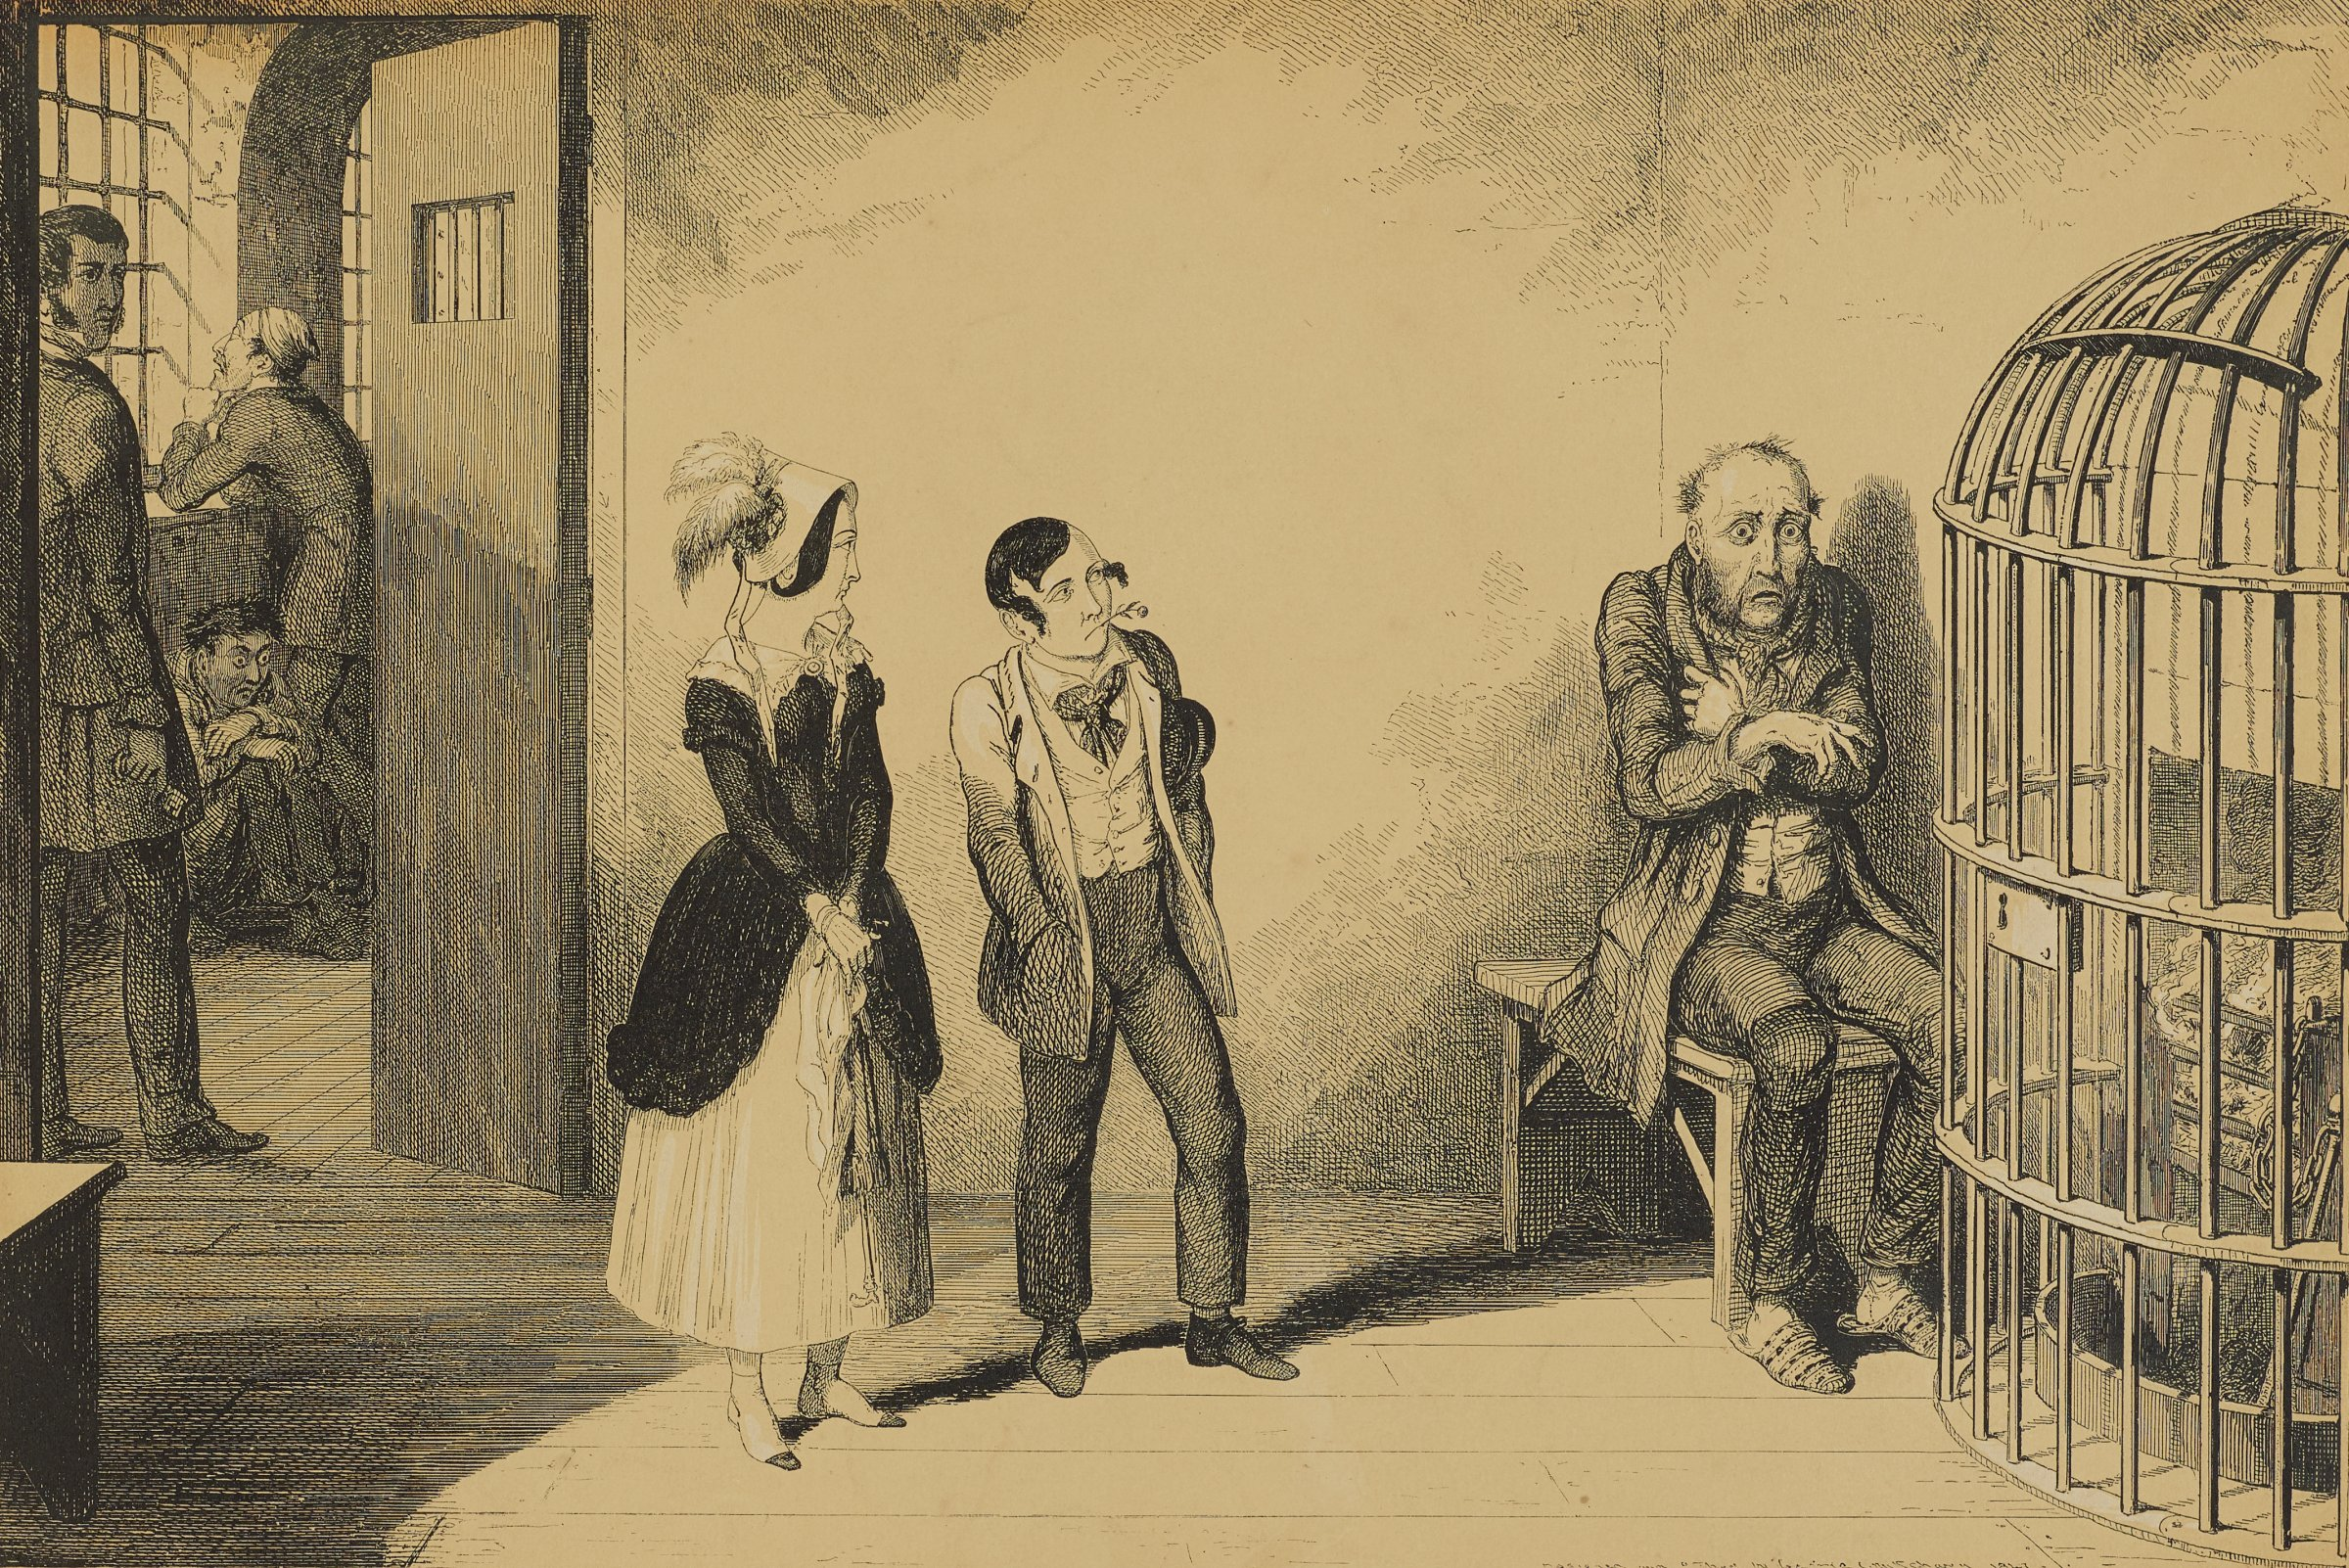 The young girl and boy stand in the center looking at the man who sits on a bench. He shivers and looks forward with a frightened expression.